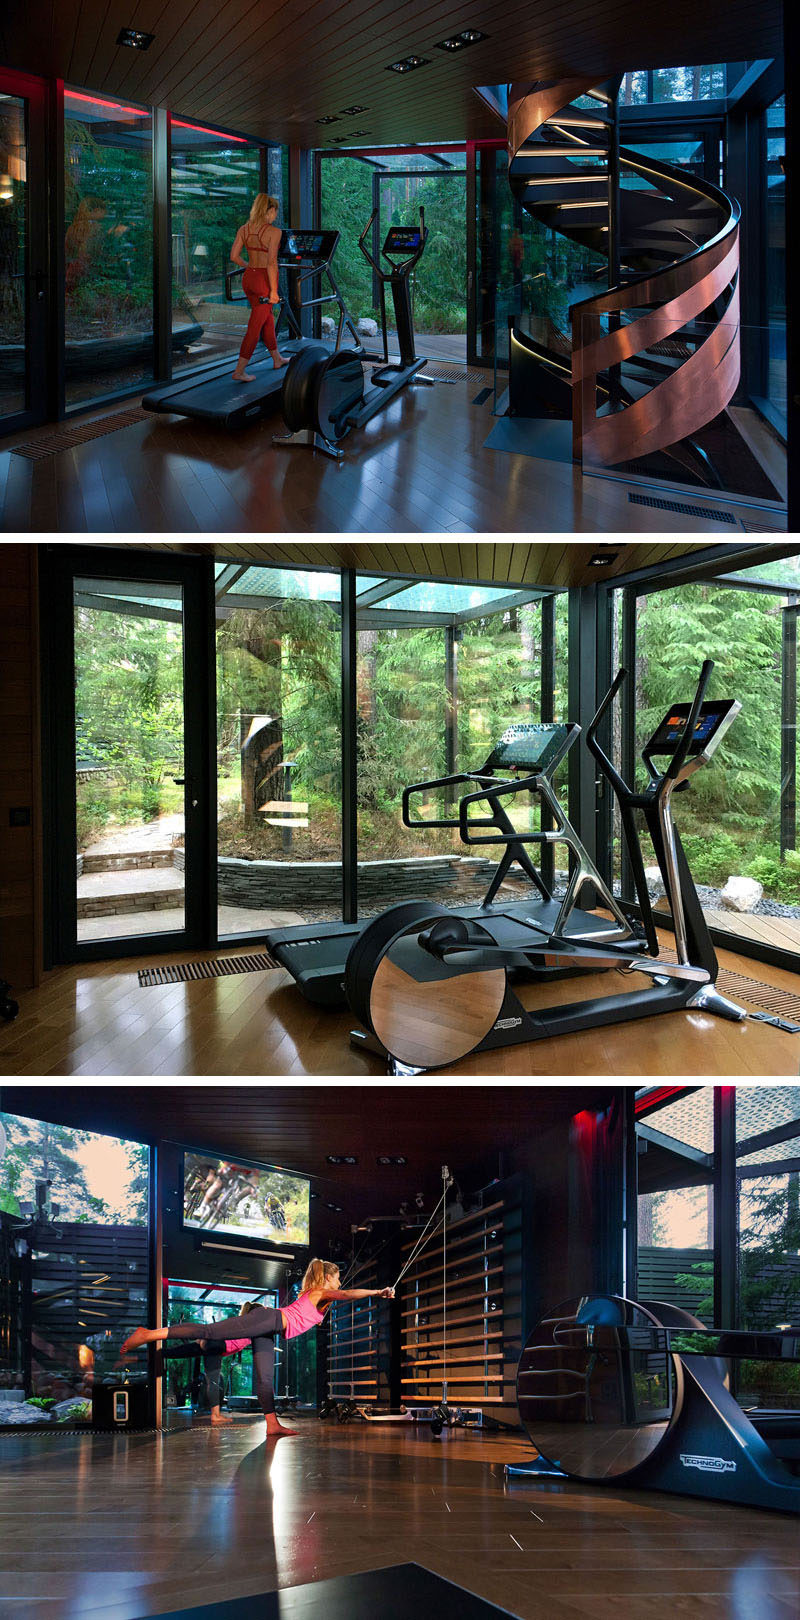 Inside this modern gym there are three floors that are connected by a copper-clad spiral staircase.